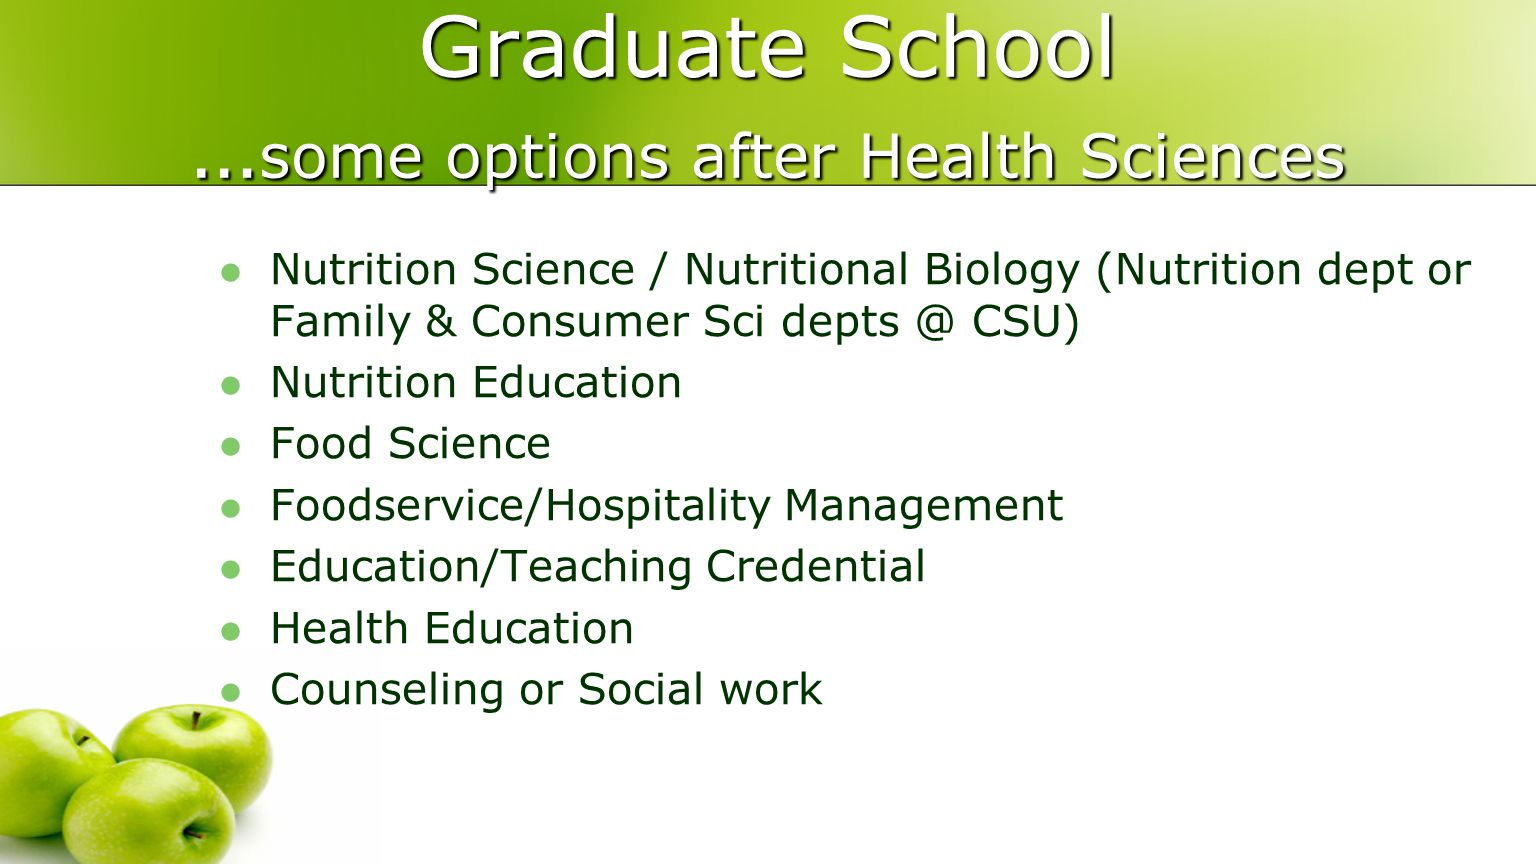 Graduate School … some options after Health Sciences Nutrition Science / Nutritional Biology (Nutrition dept or Family & Consumer Sci depts @ CSU) Nutrition Education Food Science Foodservice/Hospitality Management Education/Teaching Credential Health Education Counseling or Social work